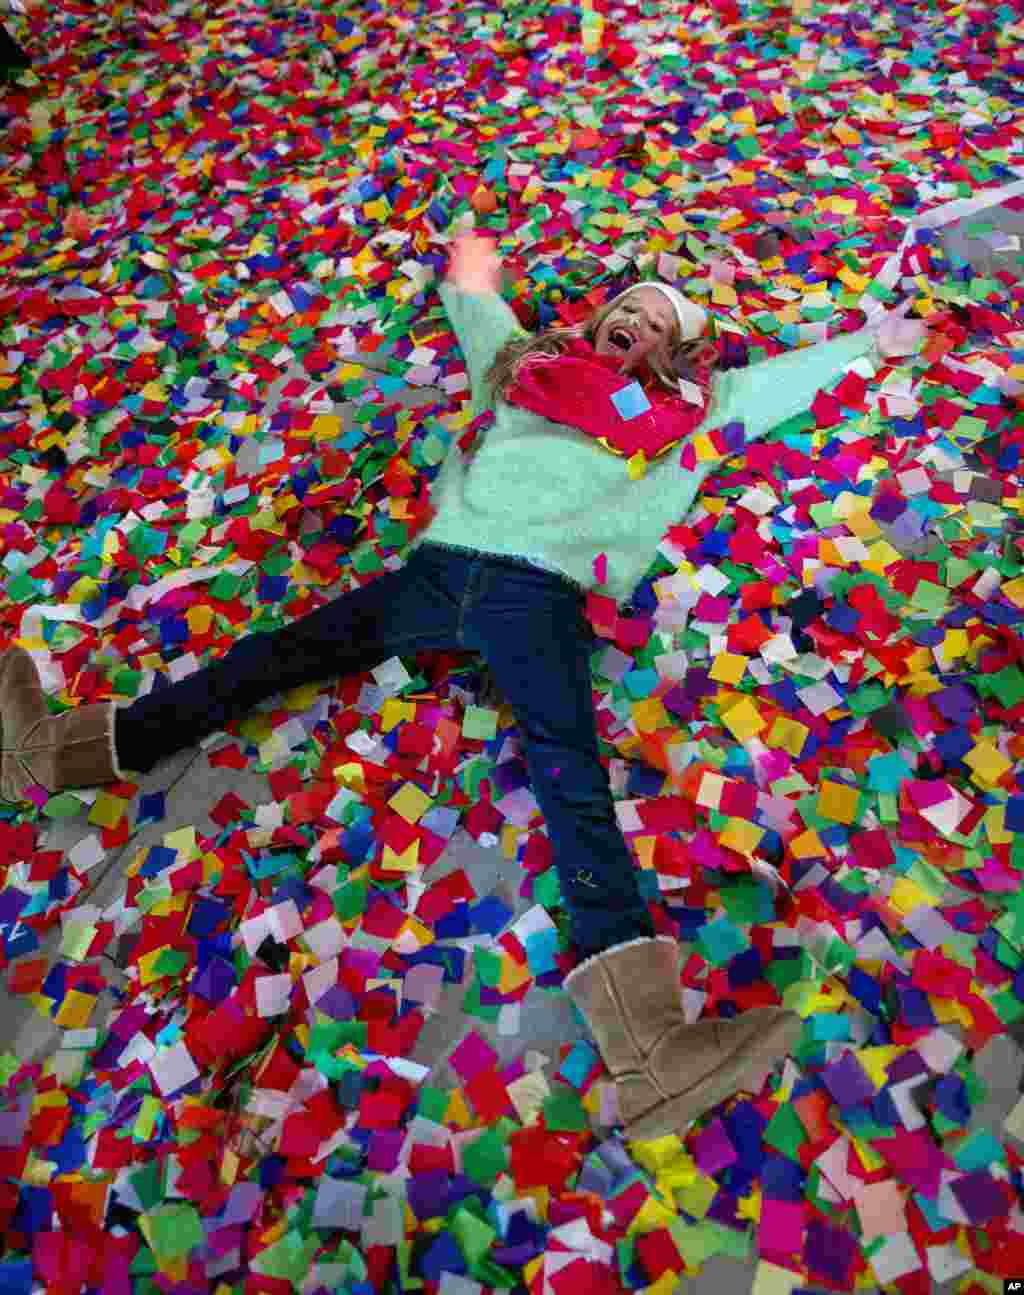 Nicole Tacher, 11, lays in confetti on a hotel balcony as the new year is celebrated, Times Square, New York City, New York, Jan. 1, 2014.